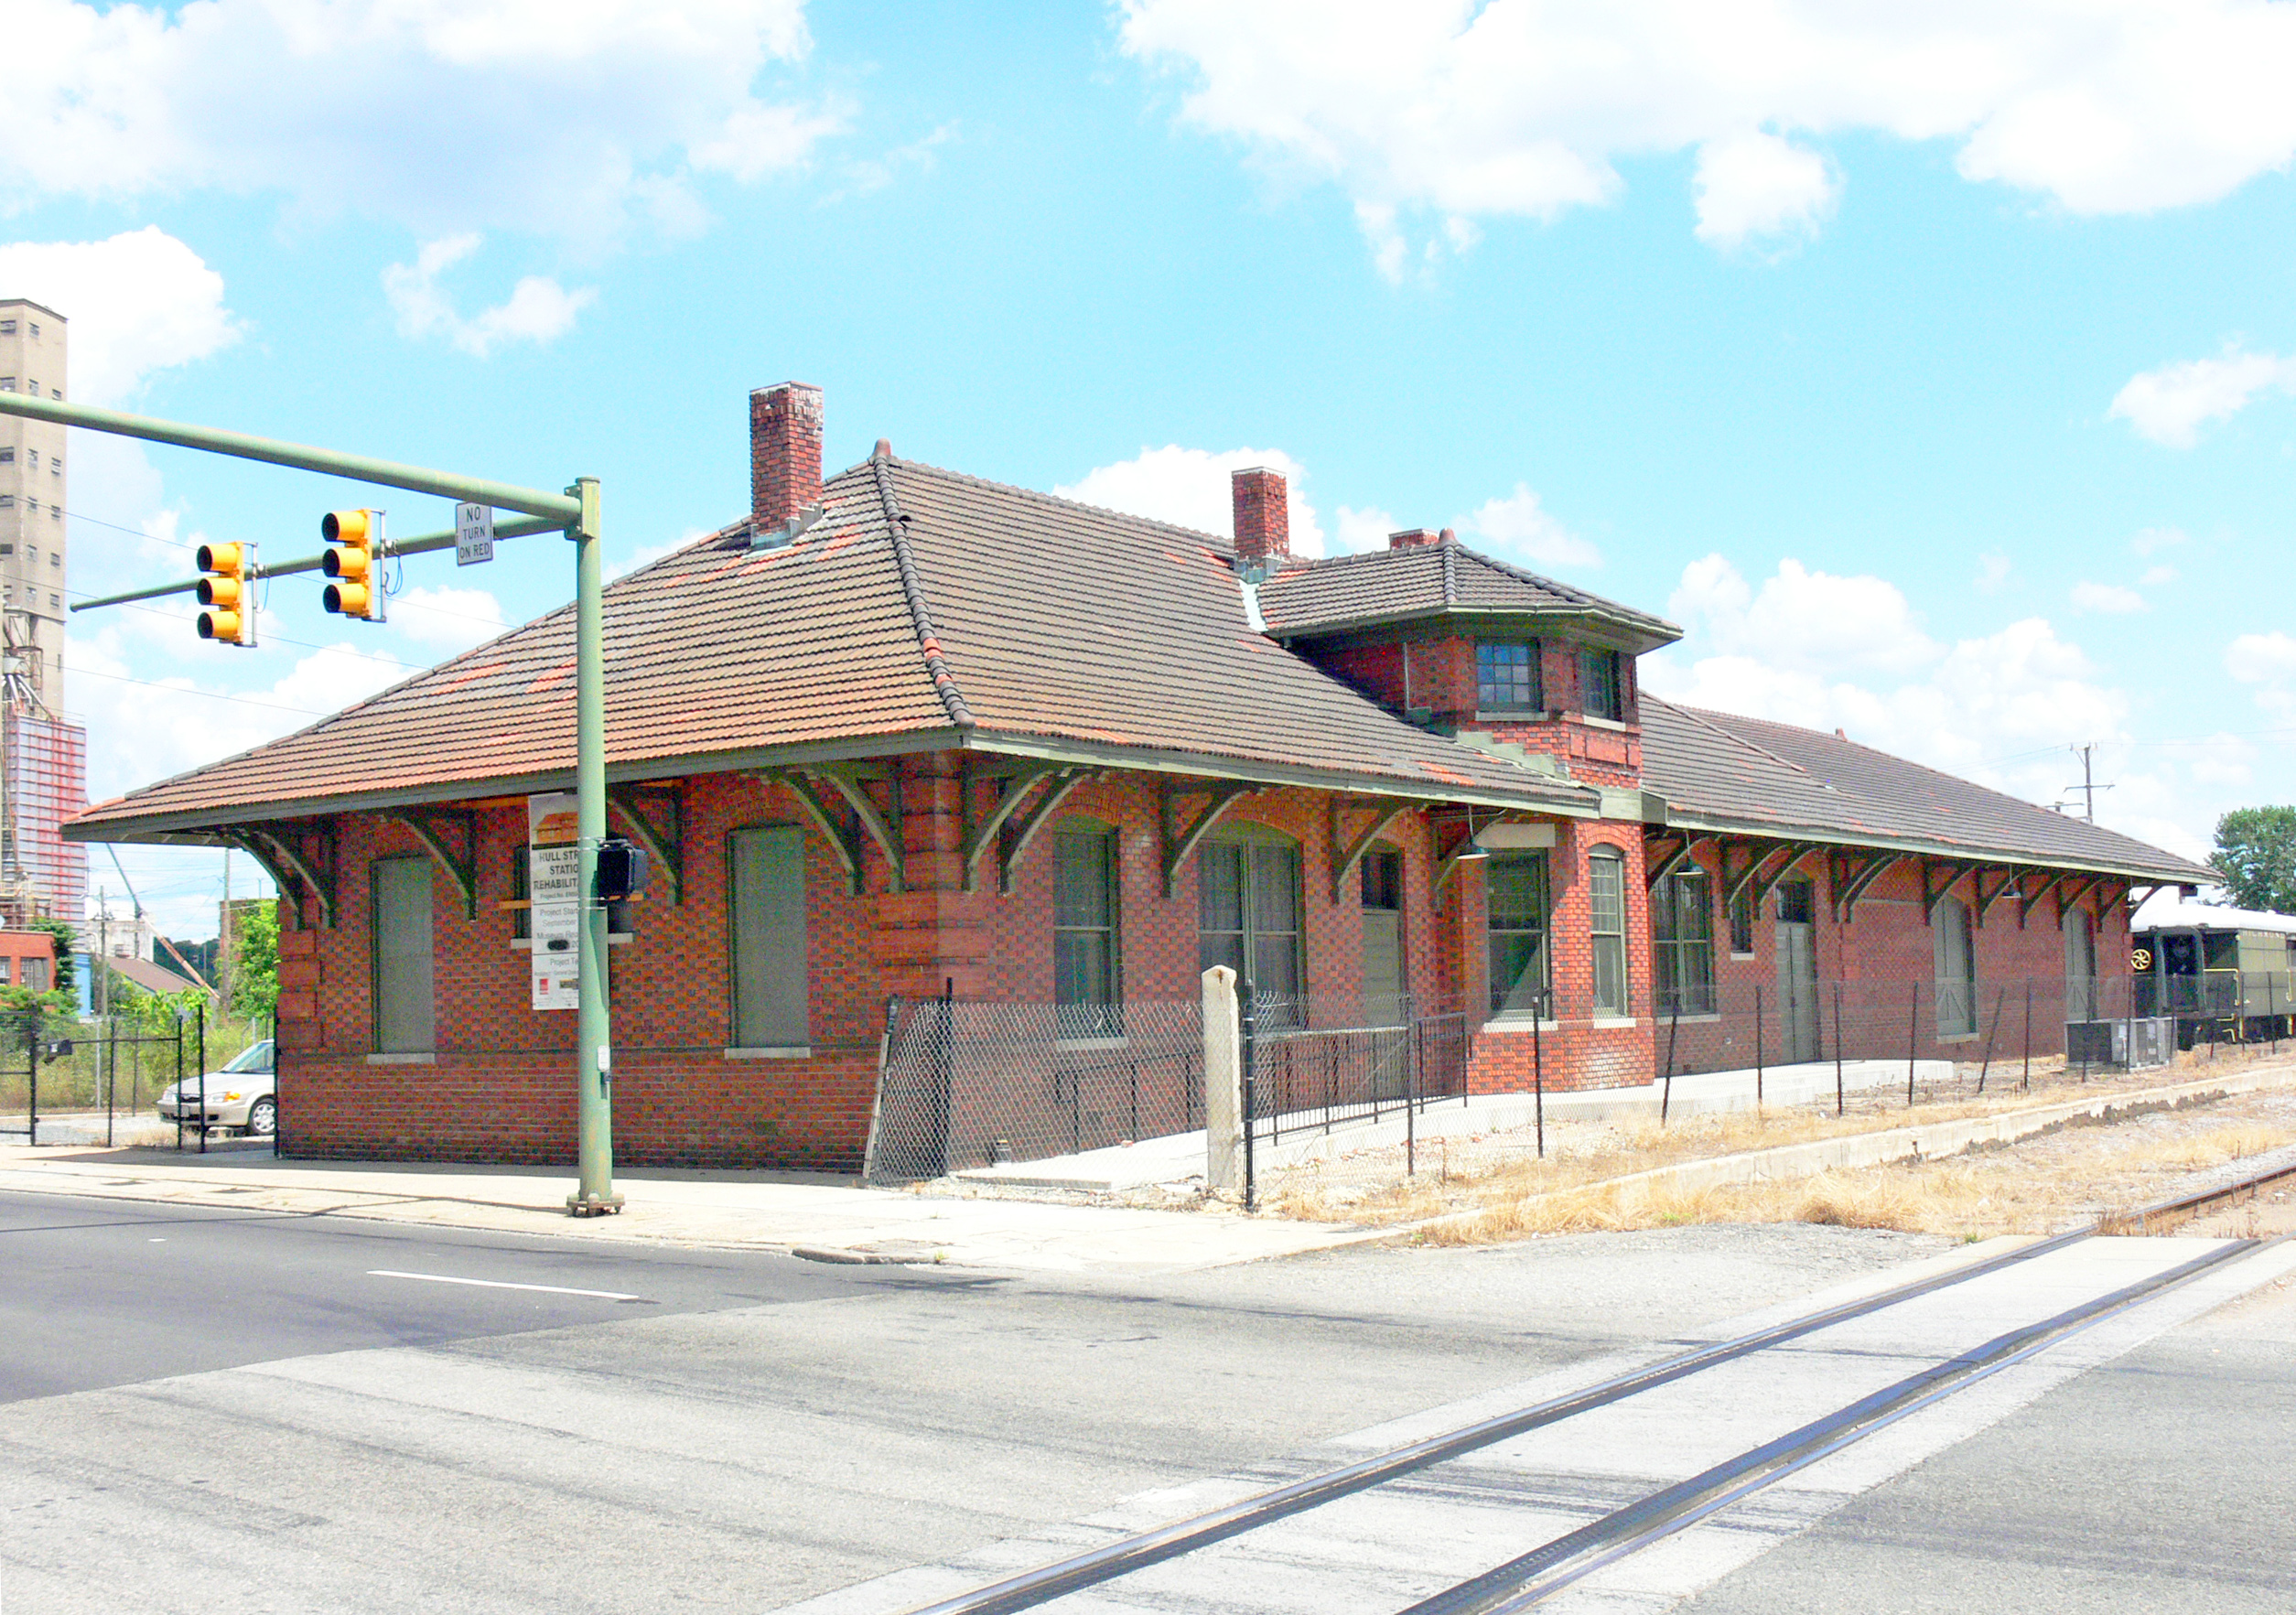 Manchester Industrial Historic District & Boundary Increases